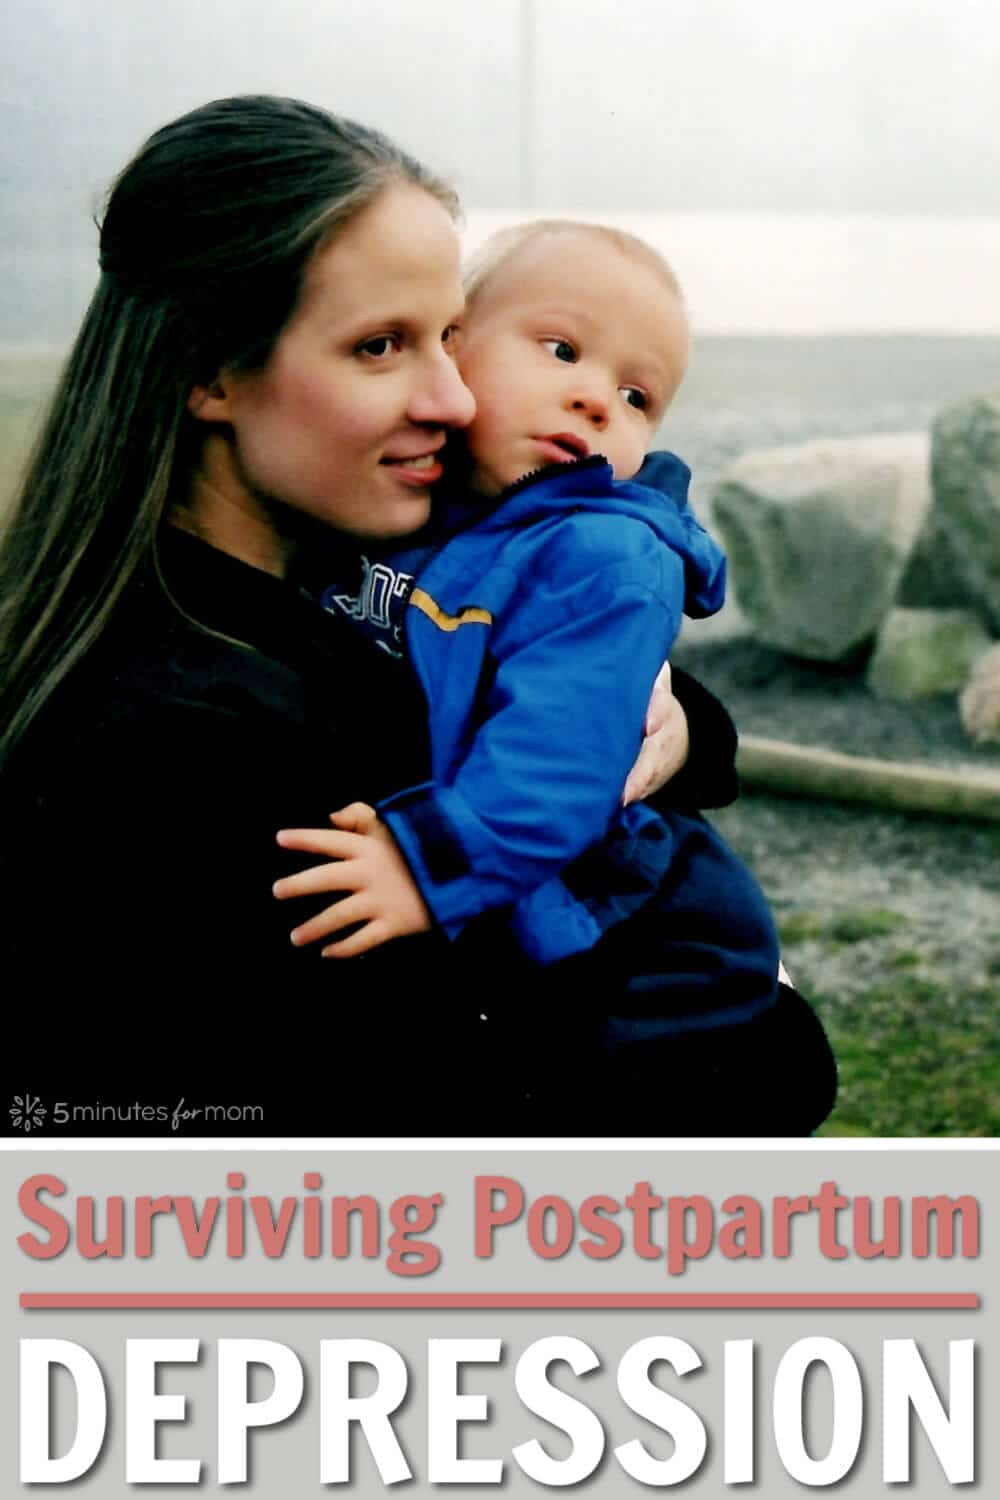 Surviving Postpartum Depression - 18 Years Later